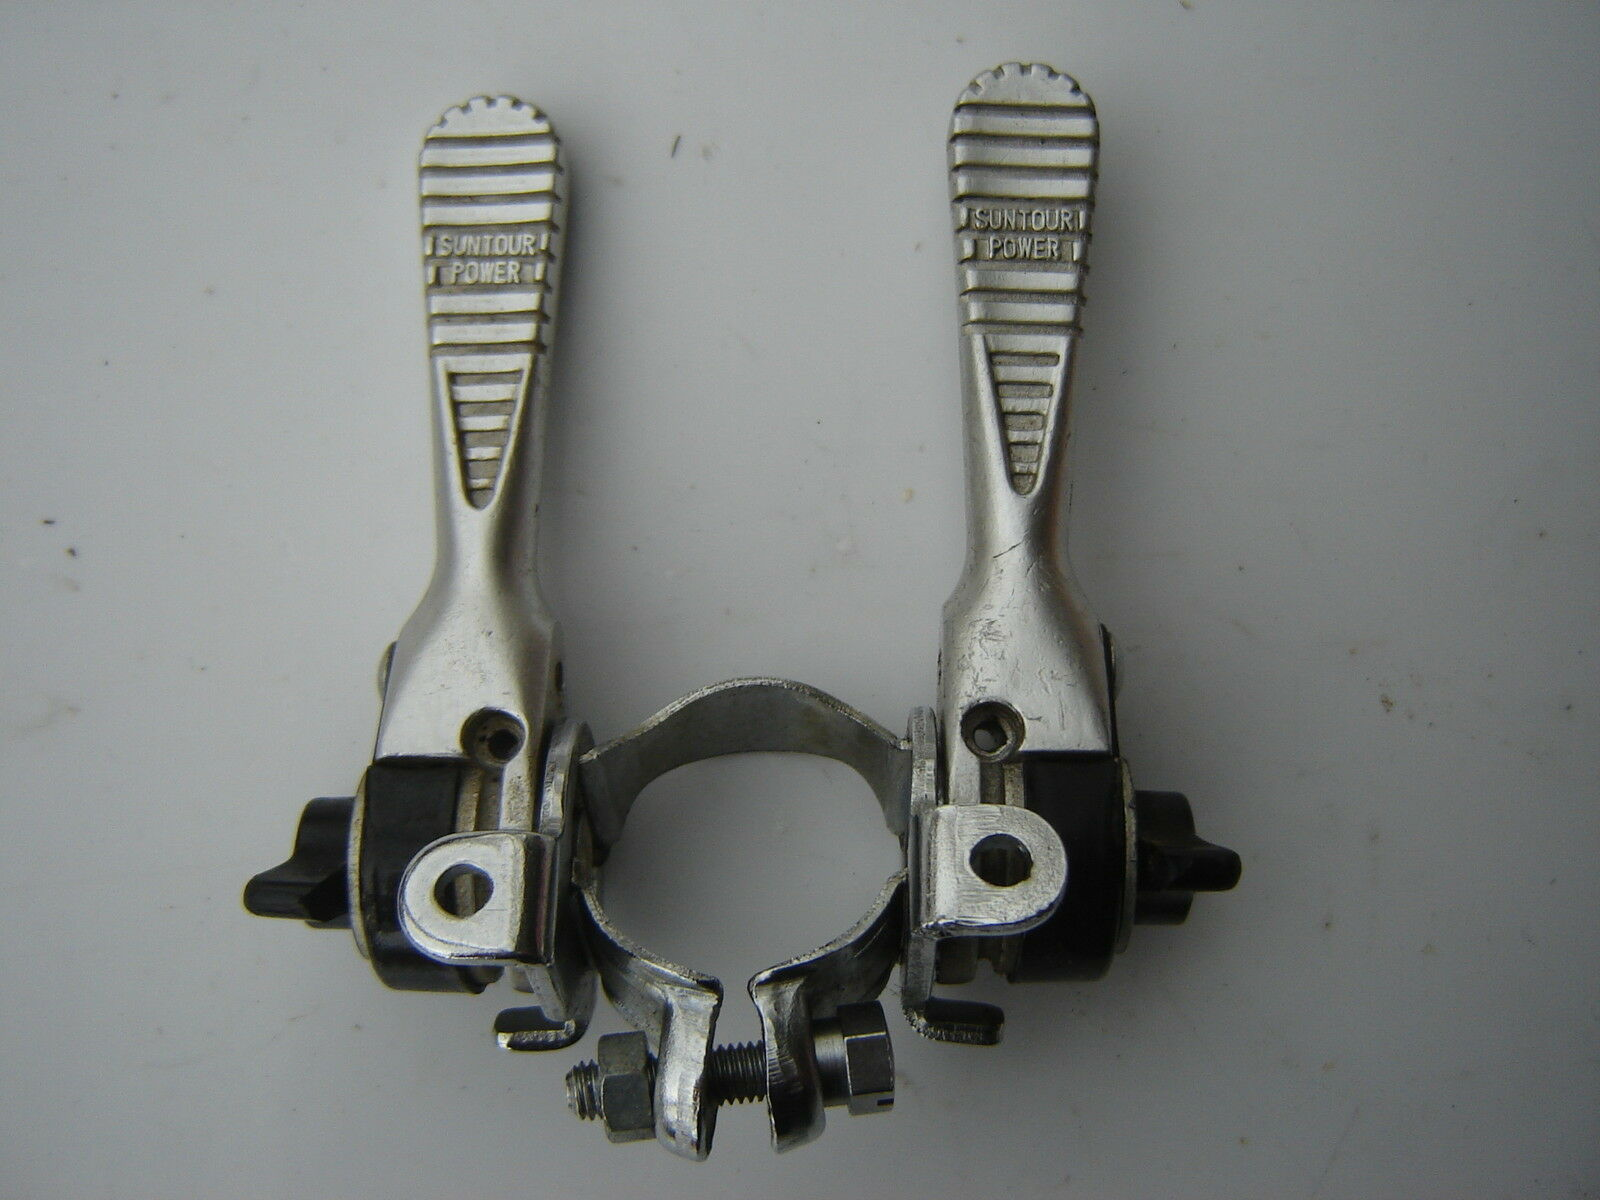 SUNTOUR LD-1500 POWER  CLAMP-ON DOWNTUBE SHIFTERS - NOS  order now with big discount & free delivery